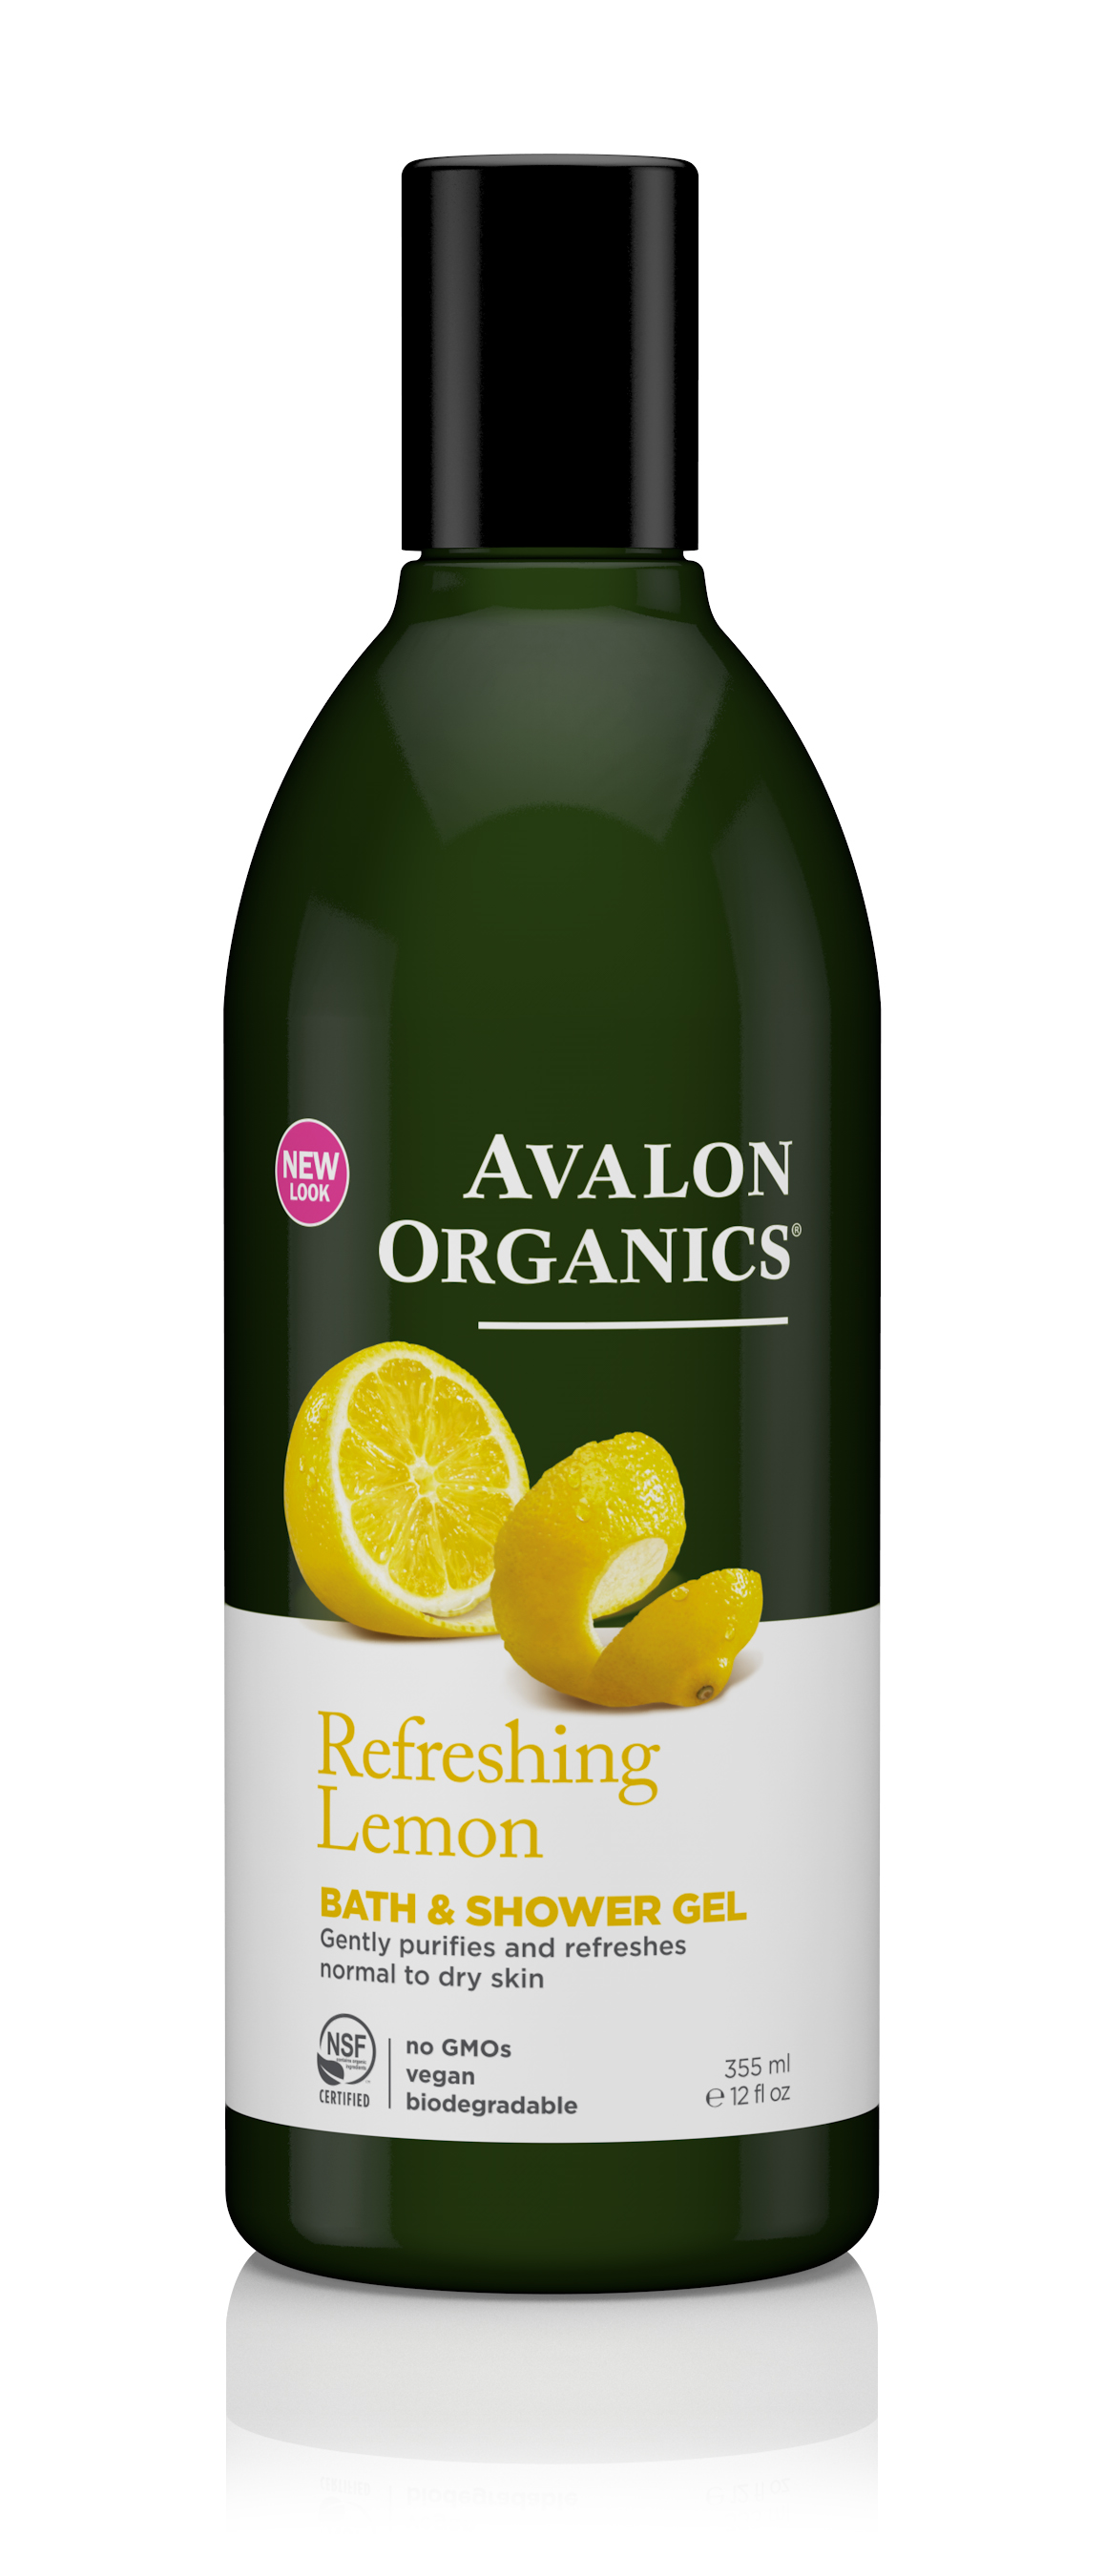 Avalon Organics Lemon Bath & Shower Gel